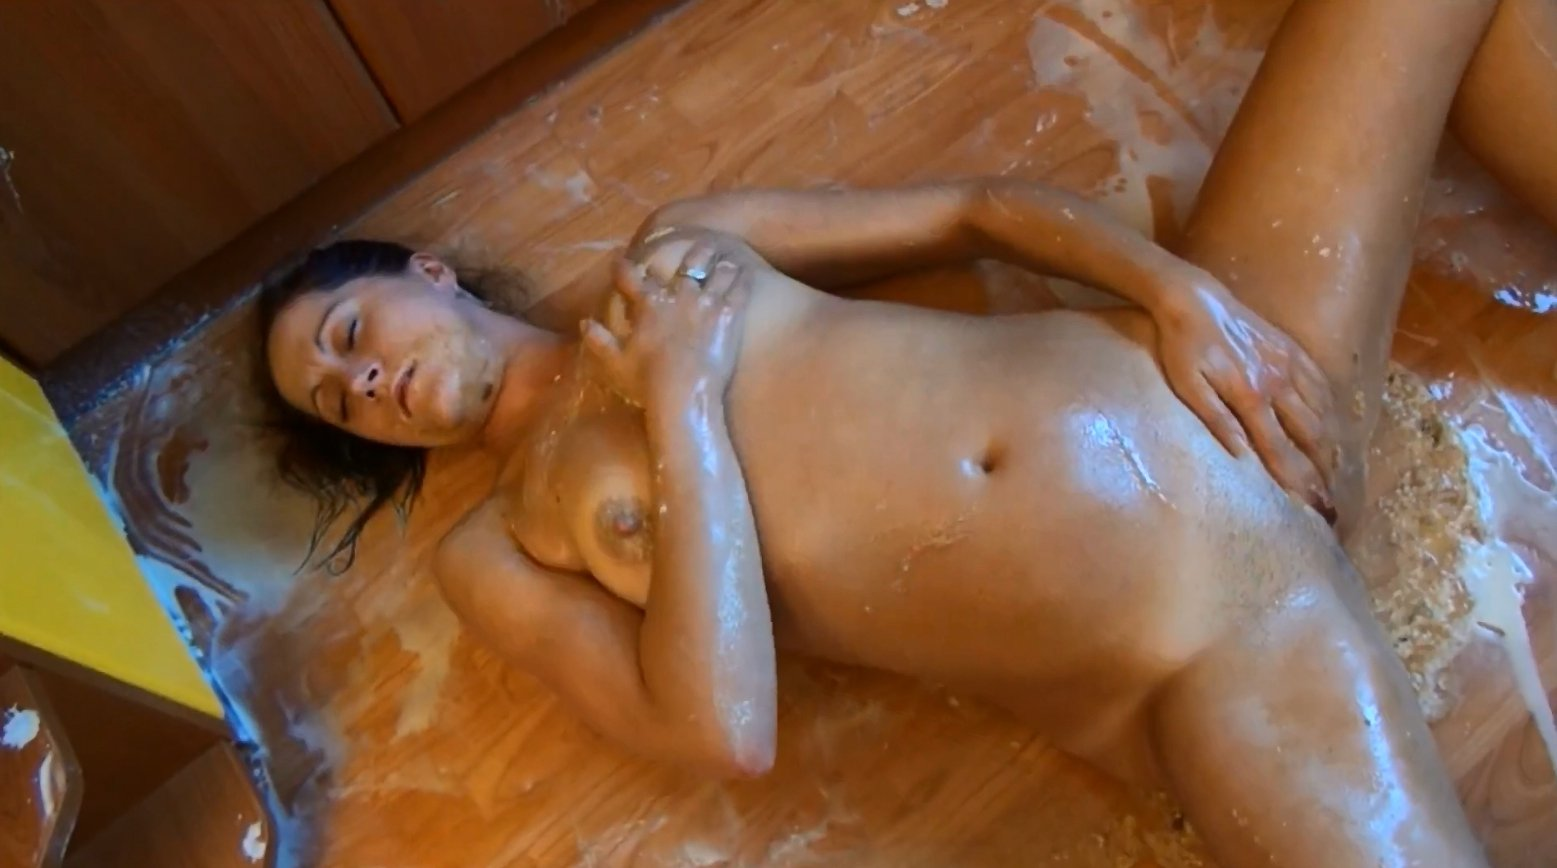 Dirtyscatgirl – whipped cream, enema, shit and vomiting